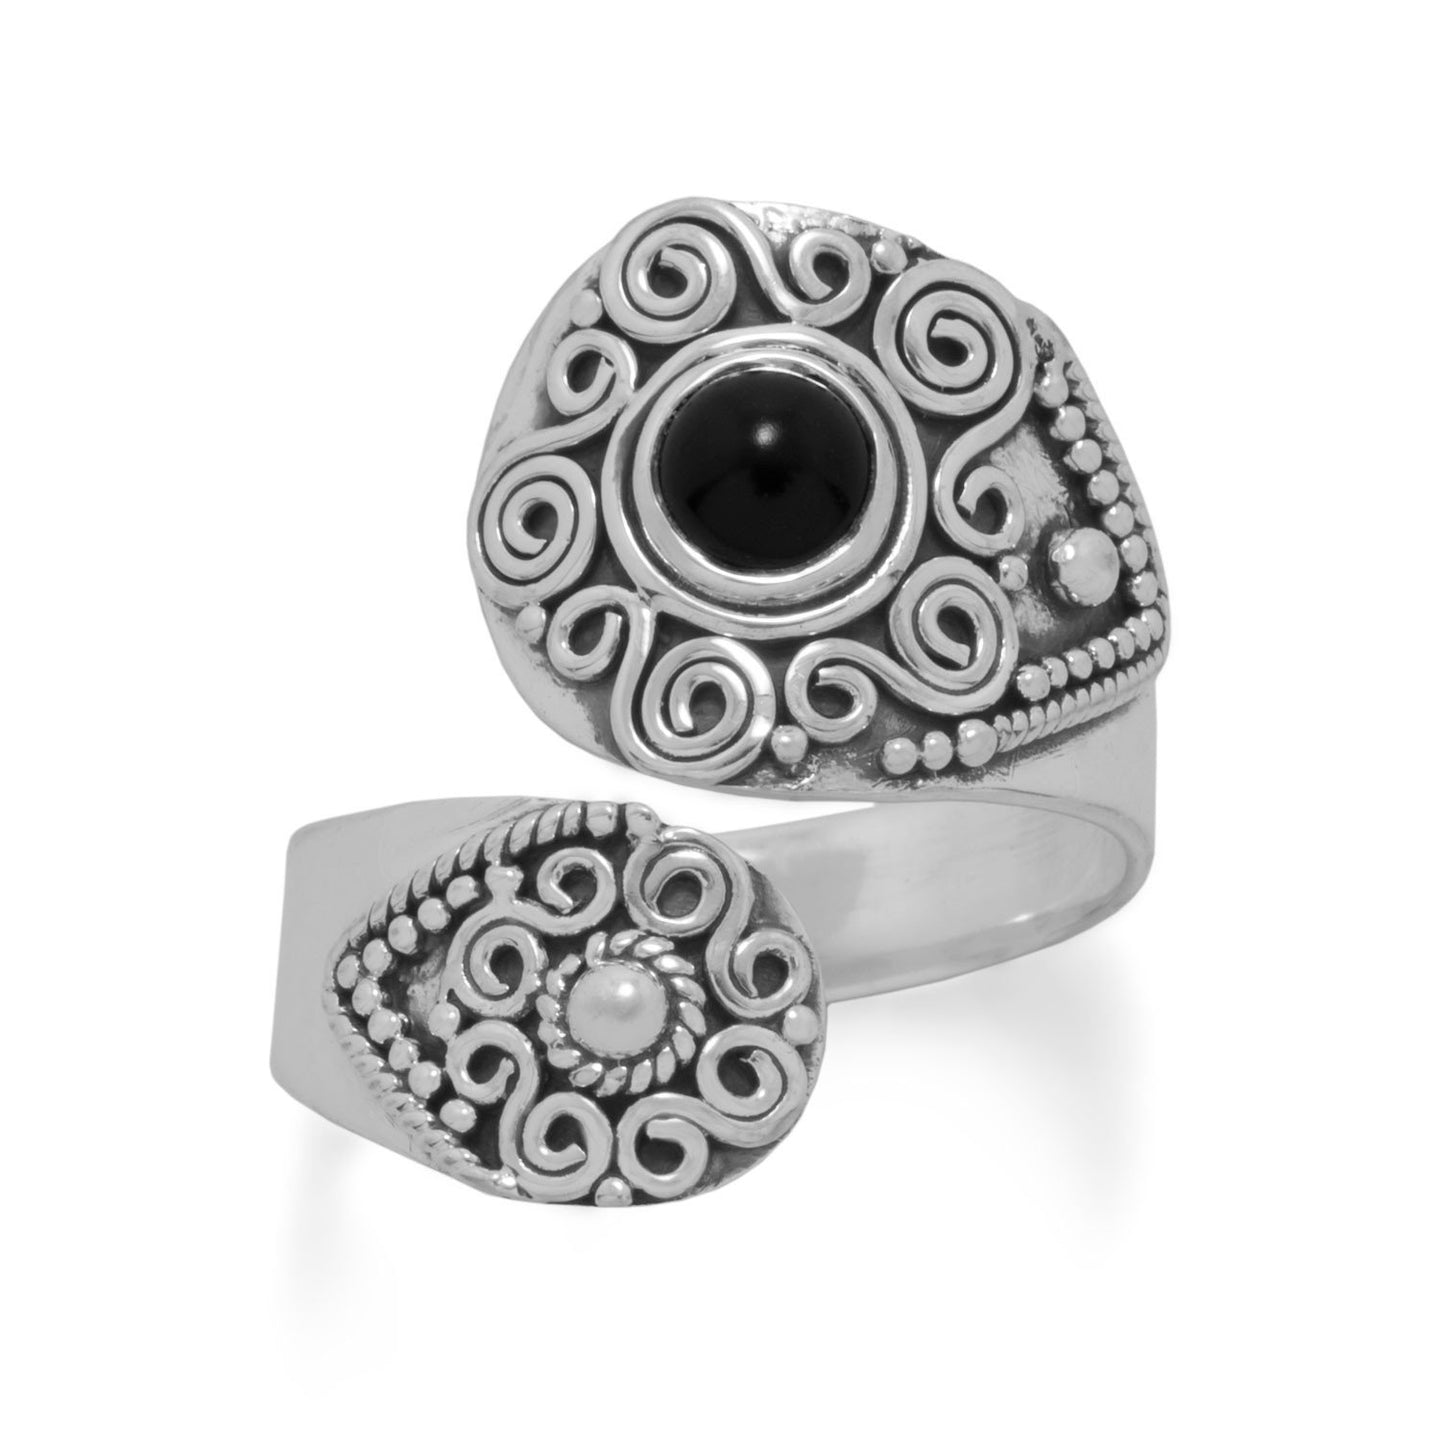 Oxidized Black Onyx Wrap Ring at 3 Barn Swallows, $66